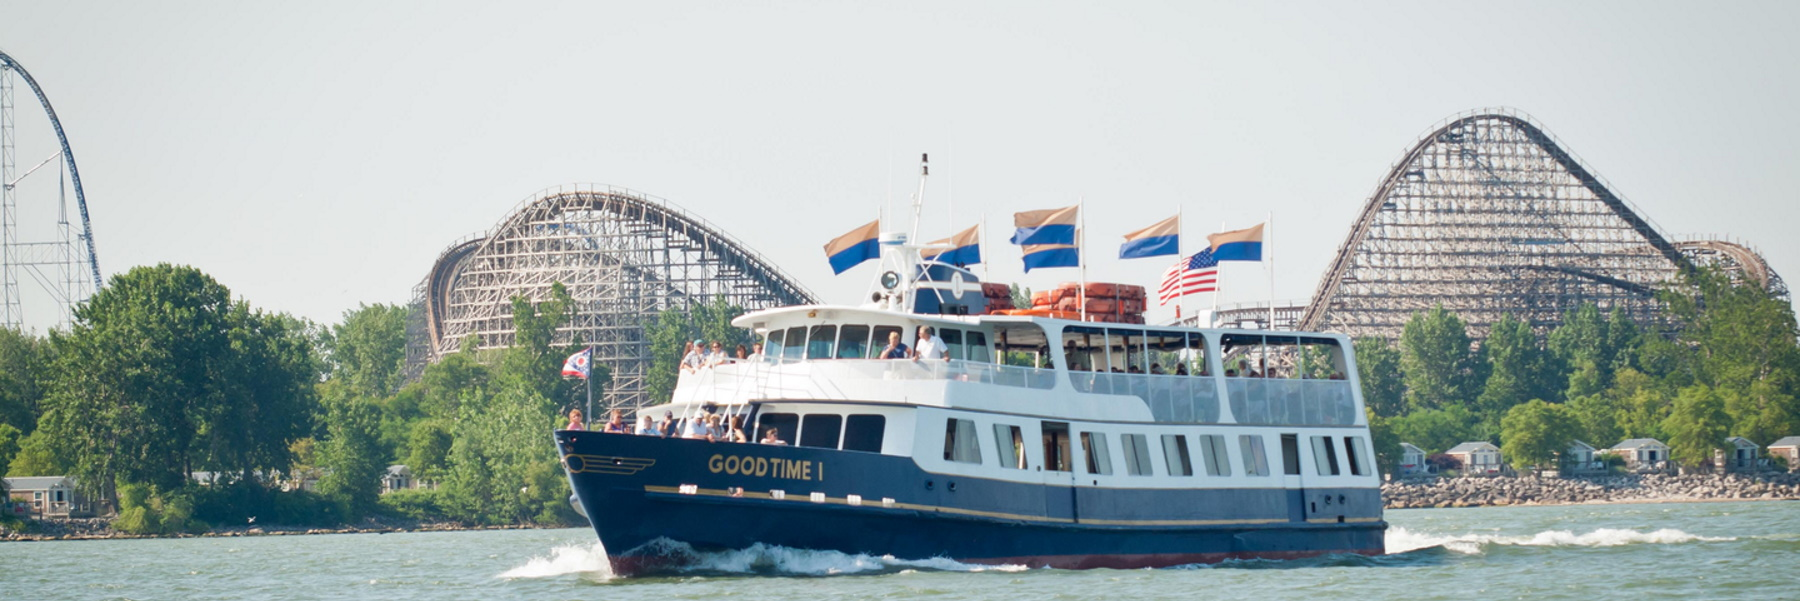 Goodtime Cruise Boat